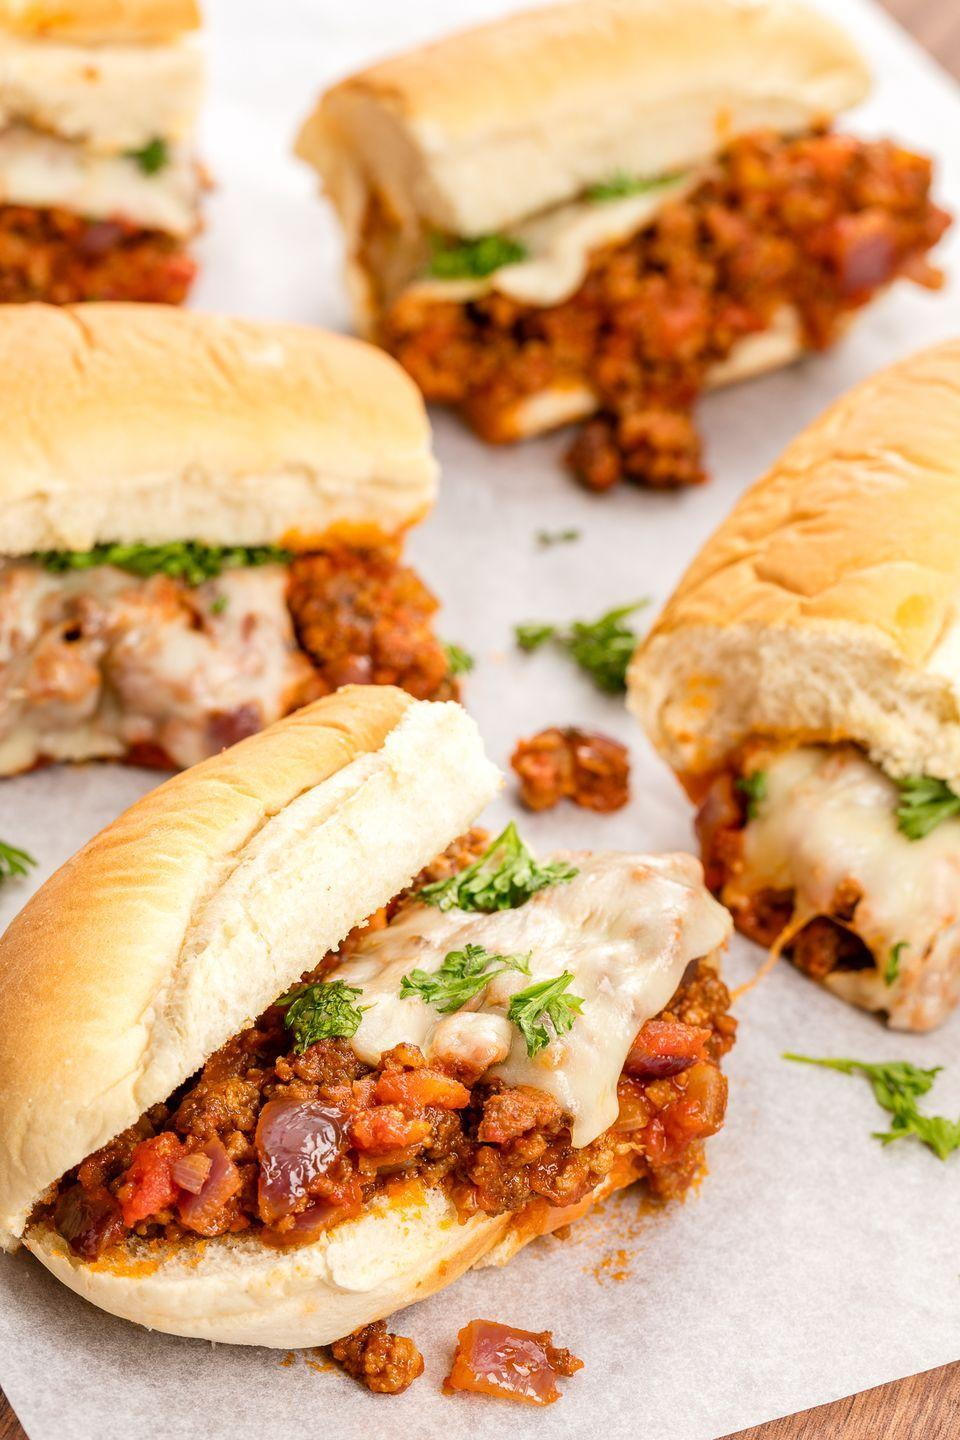 """<p>With ground turkey swapped in for beef and an Italian flair, these sloppy joes are super addicting.</p><p>Get the recipe from <a href=""""https://www.delish.com/cooking/recipe-ideas/recipes/a46564/ground-turkey-italian-sloppy-joes-recipe/"""" rel=""""nofollow noopener"""" target=""""_blank"""" data-ylk=""""slk:Delish"""" class=""""link rapid-noclick-resp"""">Delish</a>.<br></p>"""